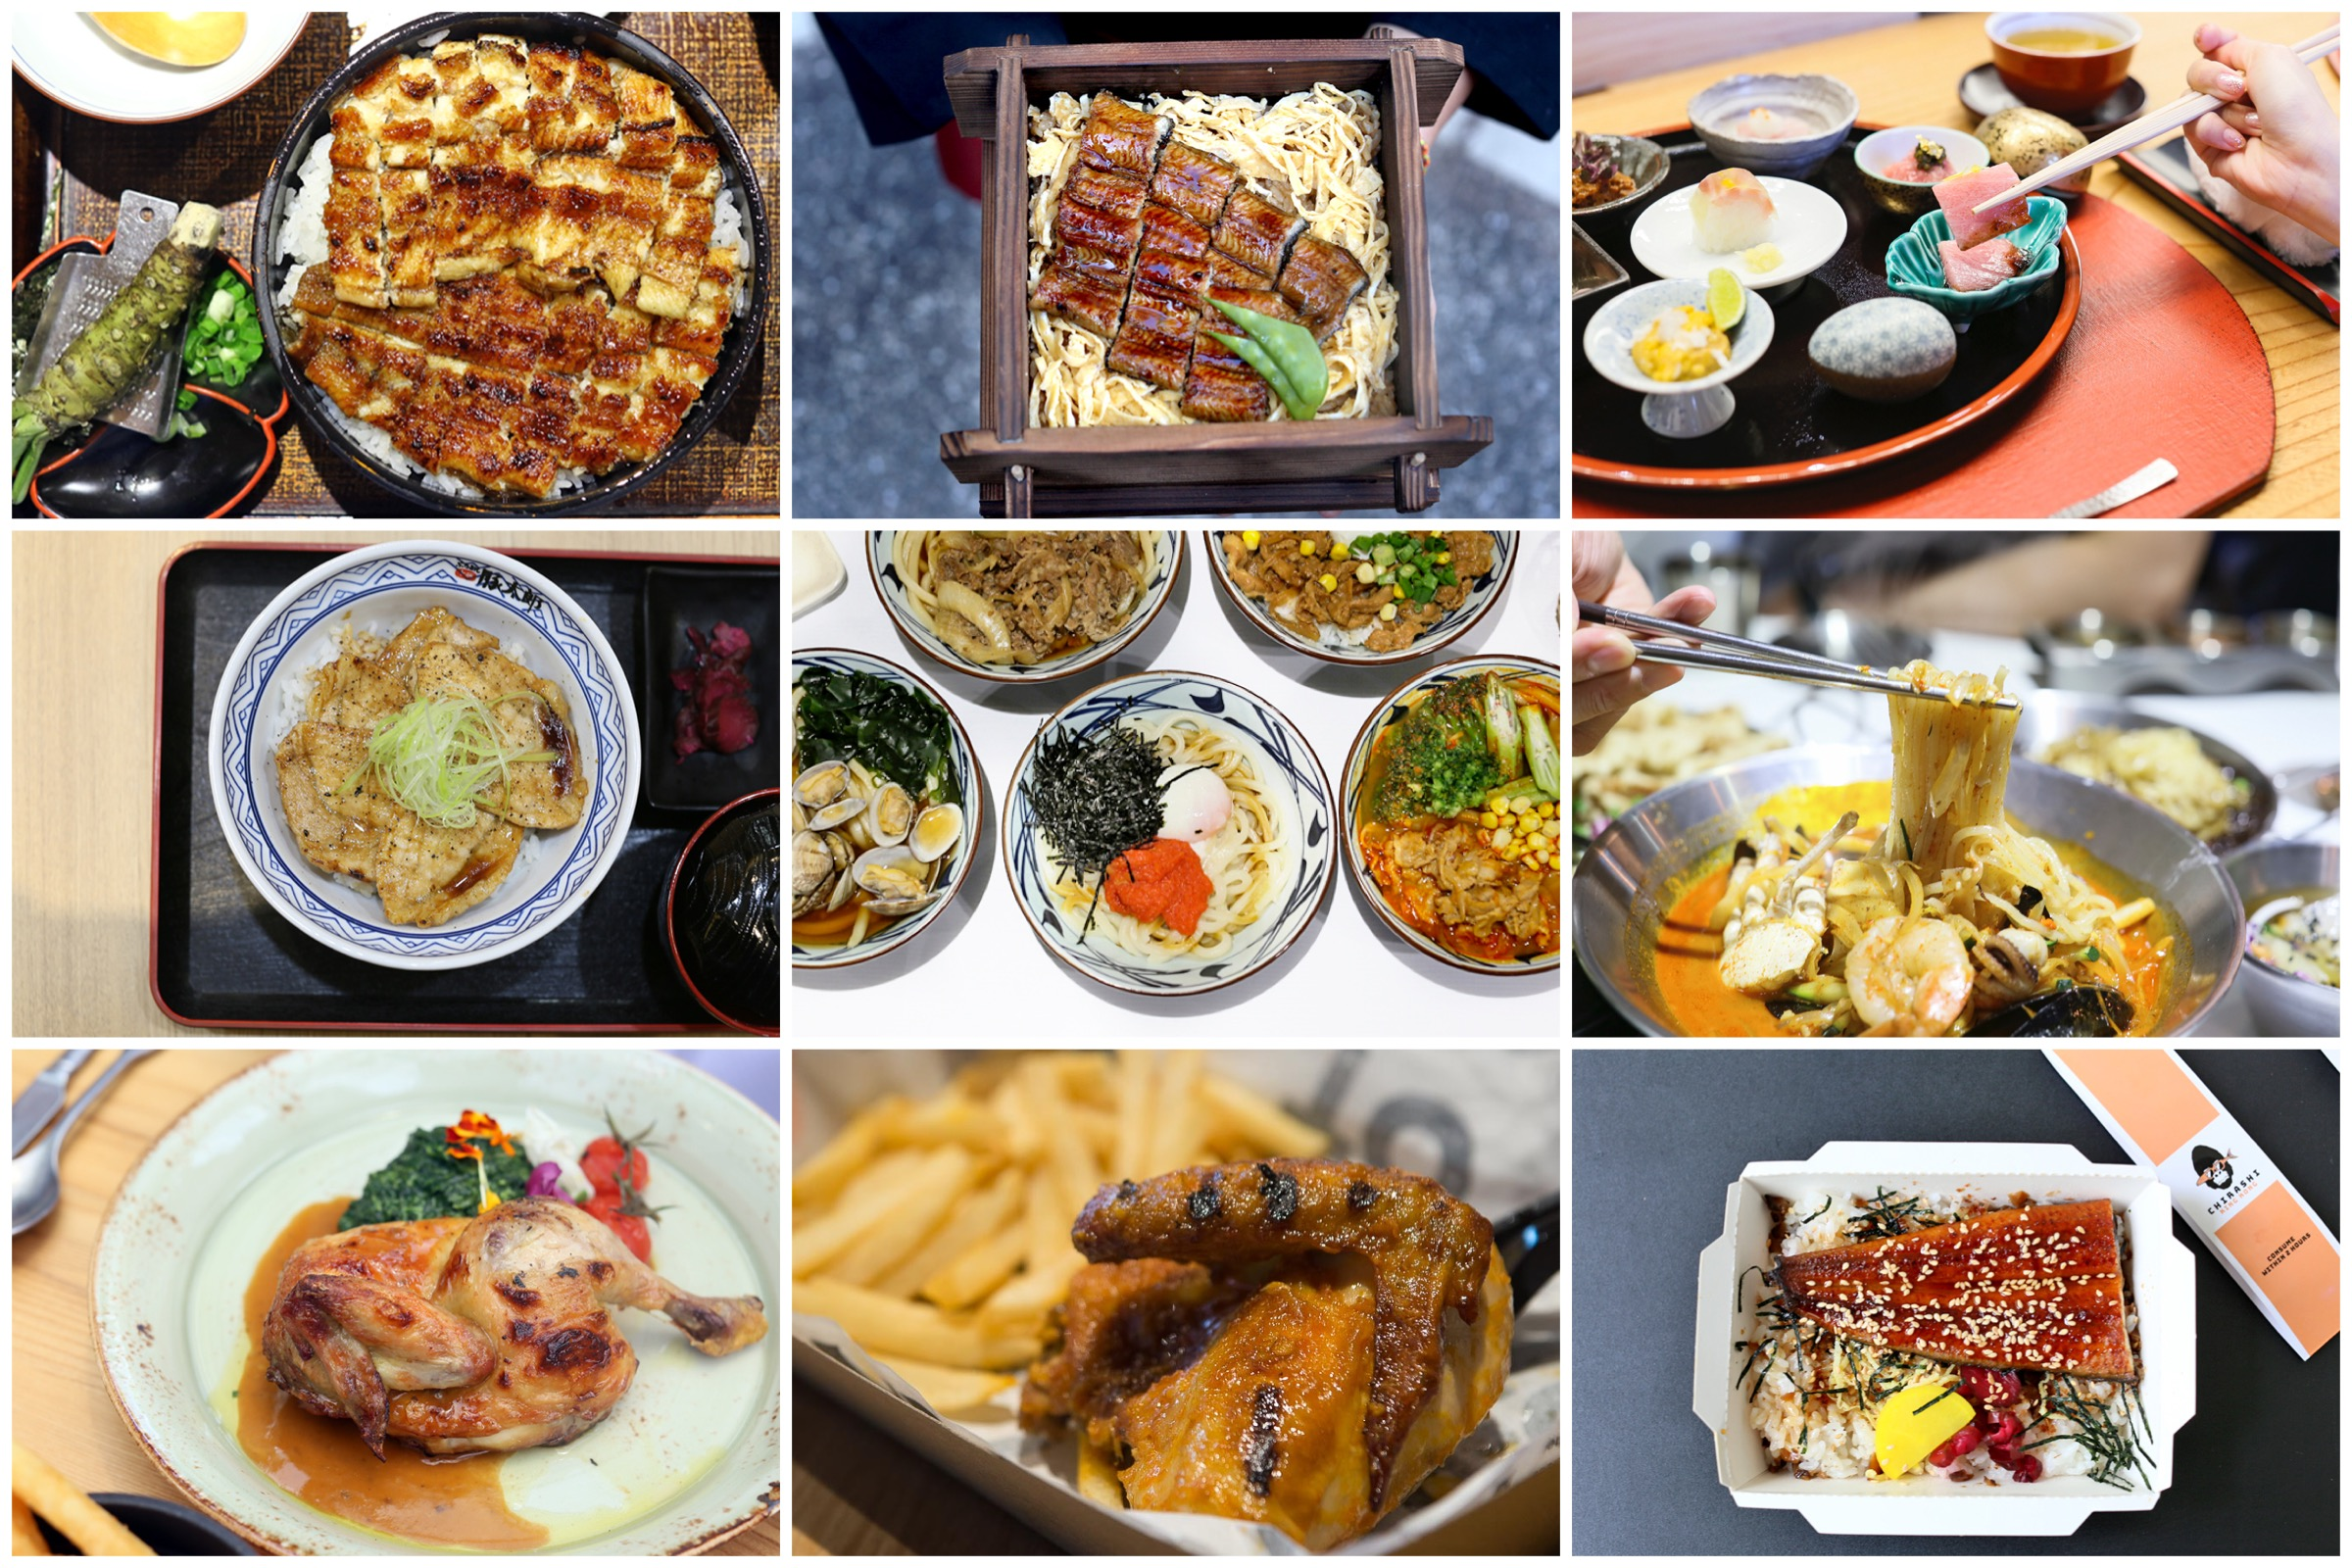 10 NEW Restaurants Singapore May 2018 - More Unagi And Udon For The Japanese Food Lovers